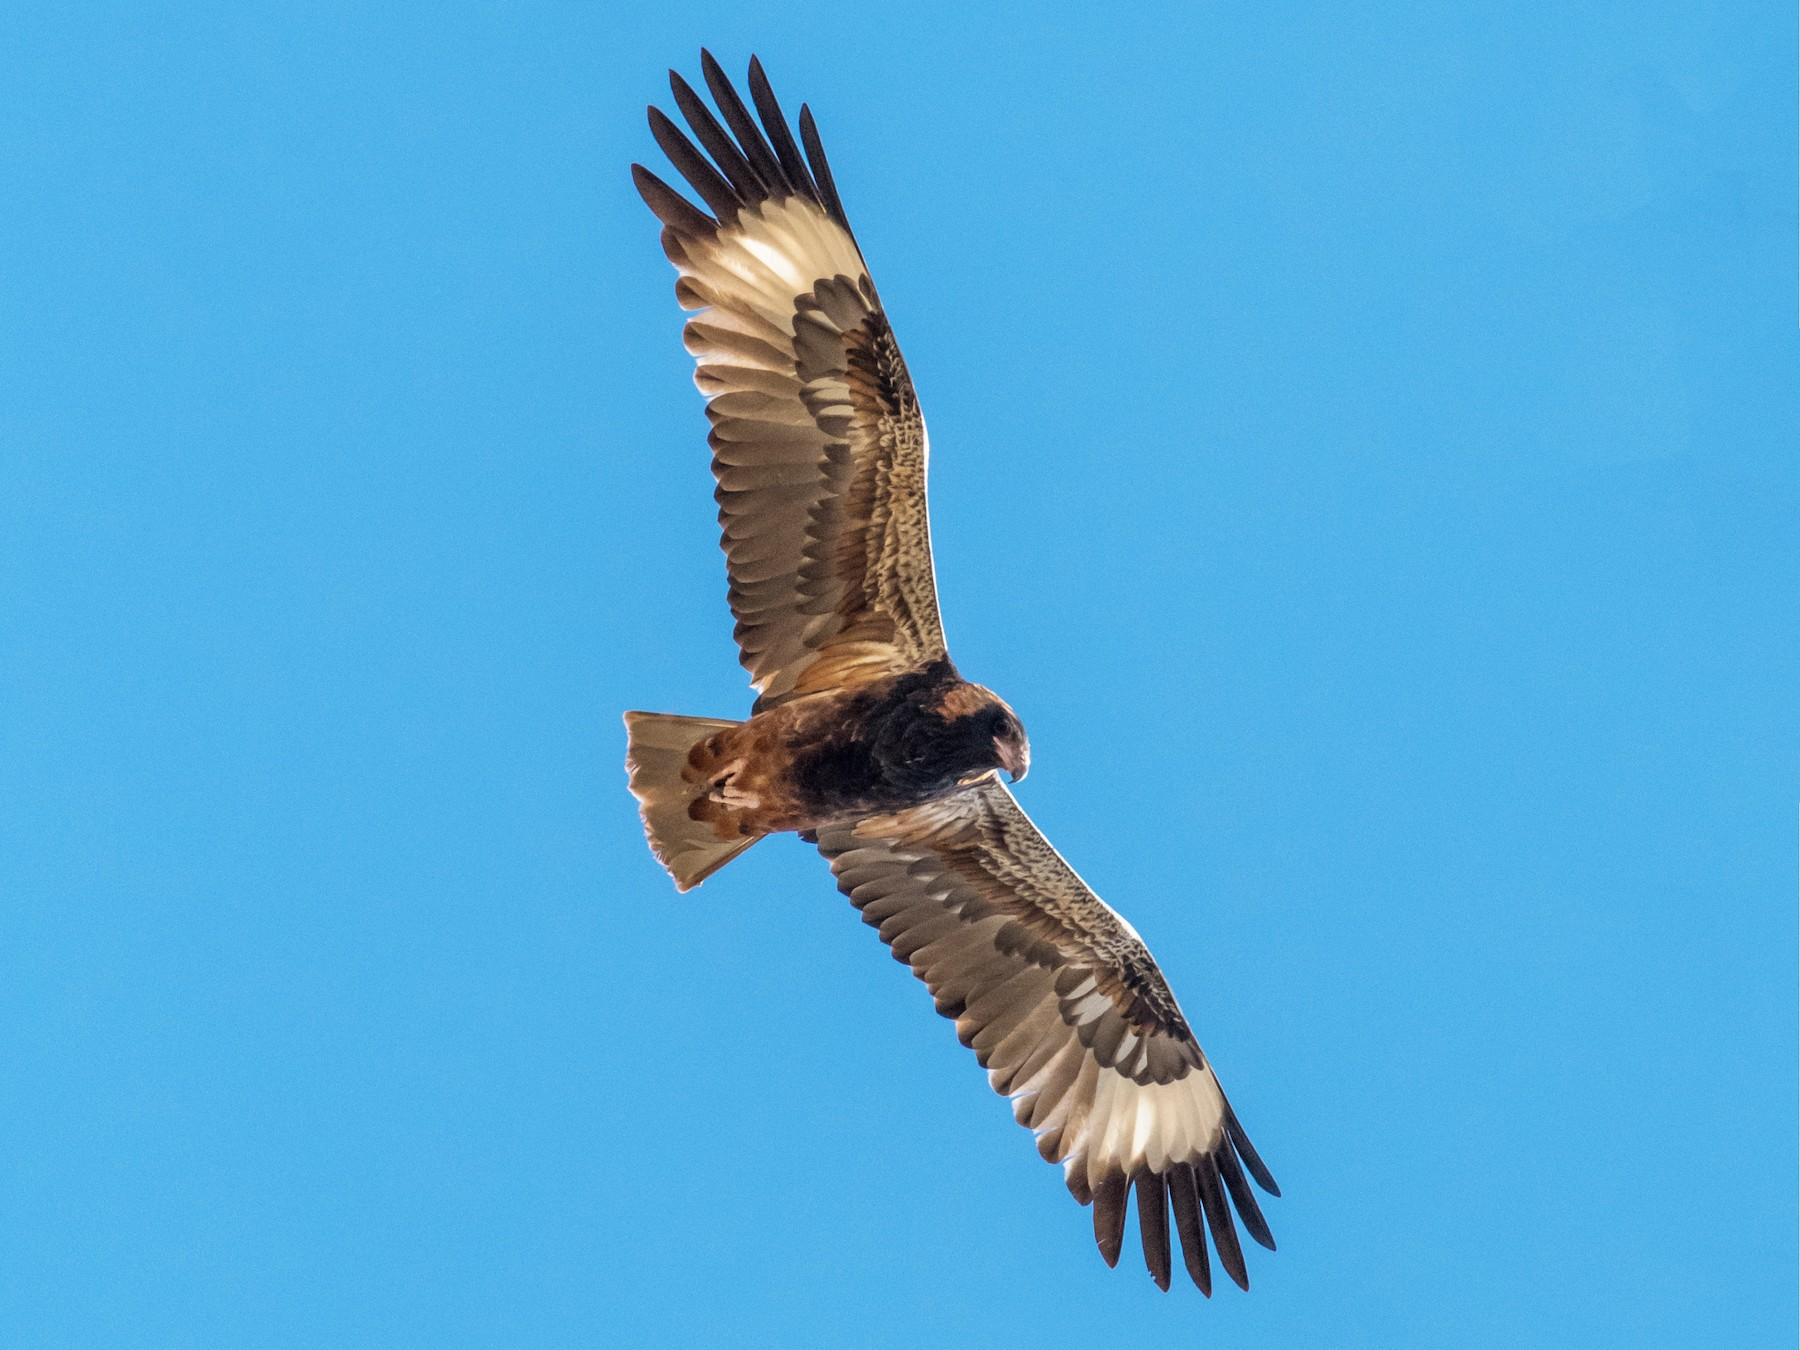 Black-breasted Kite - Raphaël Nussbaumer